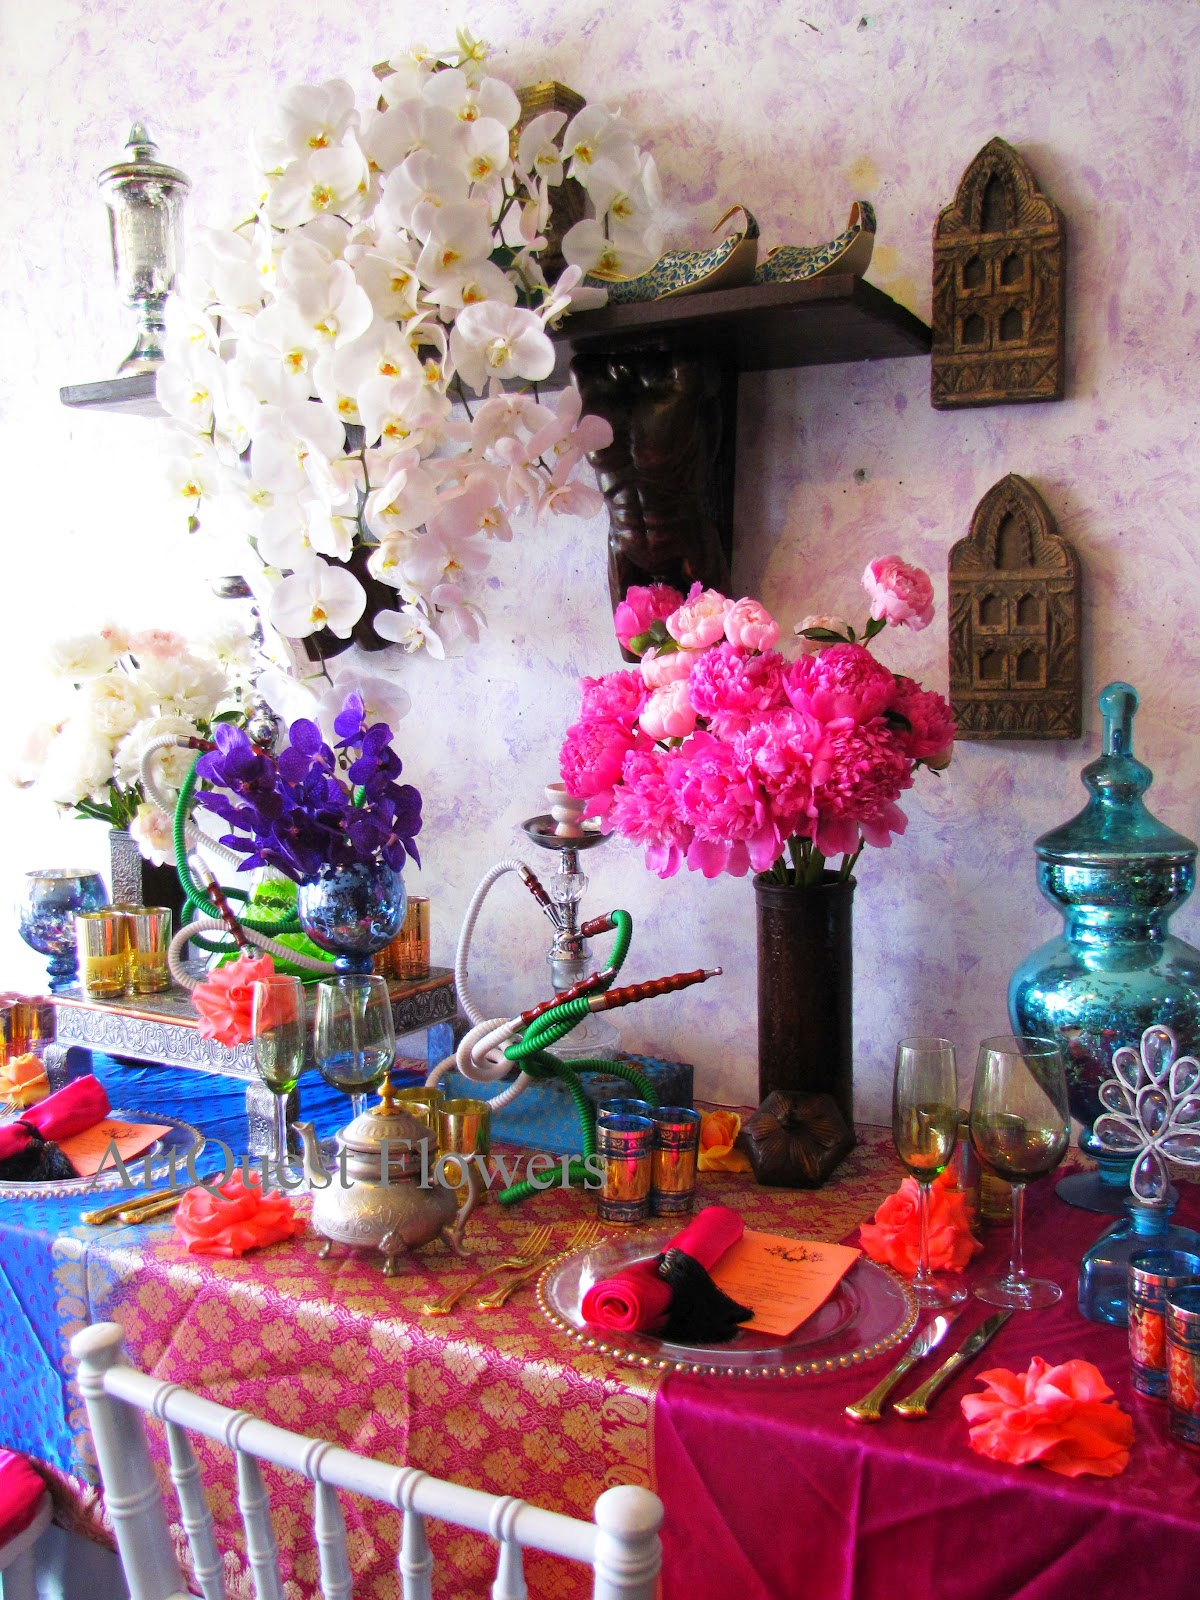 3_Moroccan Table Setting.JPG